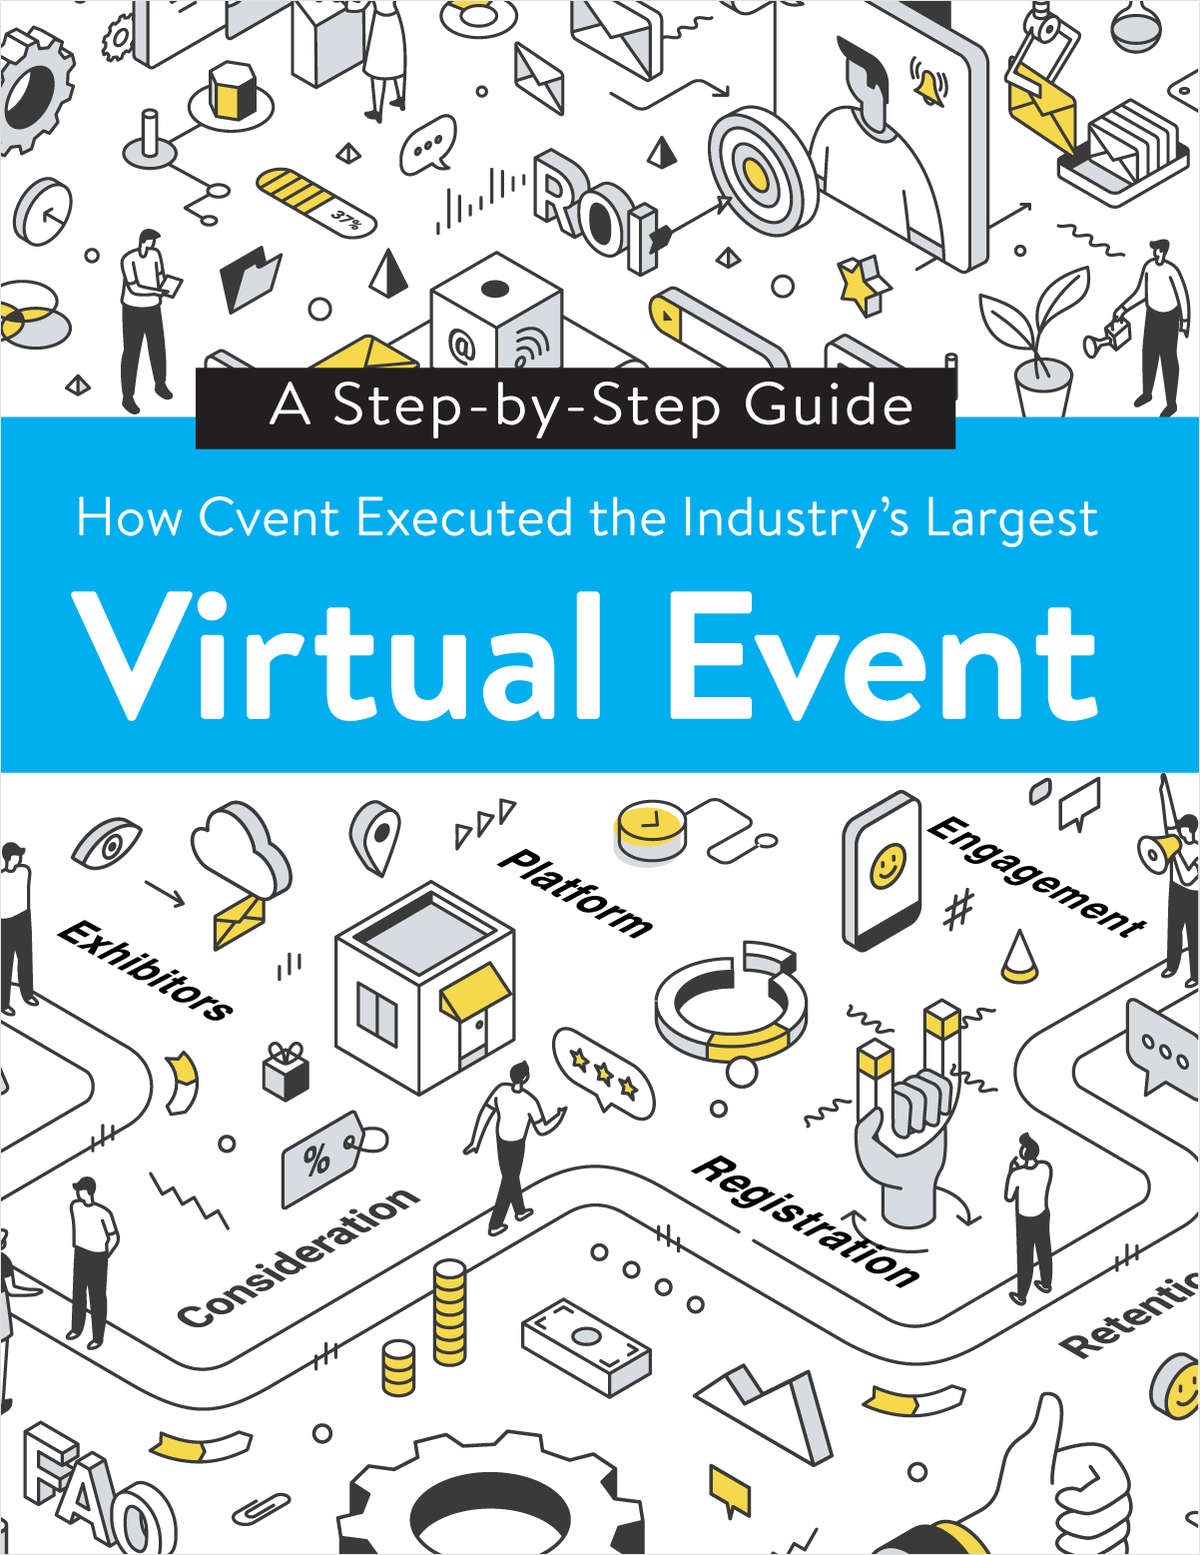 How Cvent Executed the Industry's Largest Virtual Event: A Step-By-Step Guide